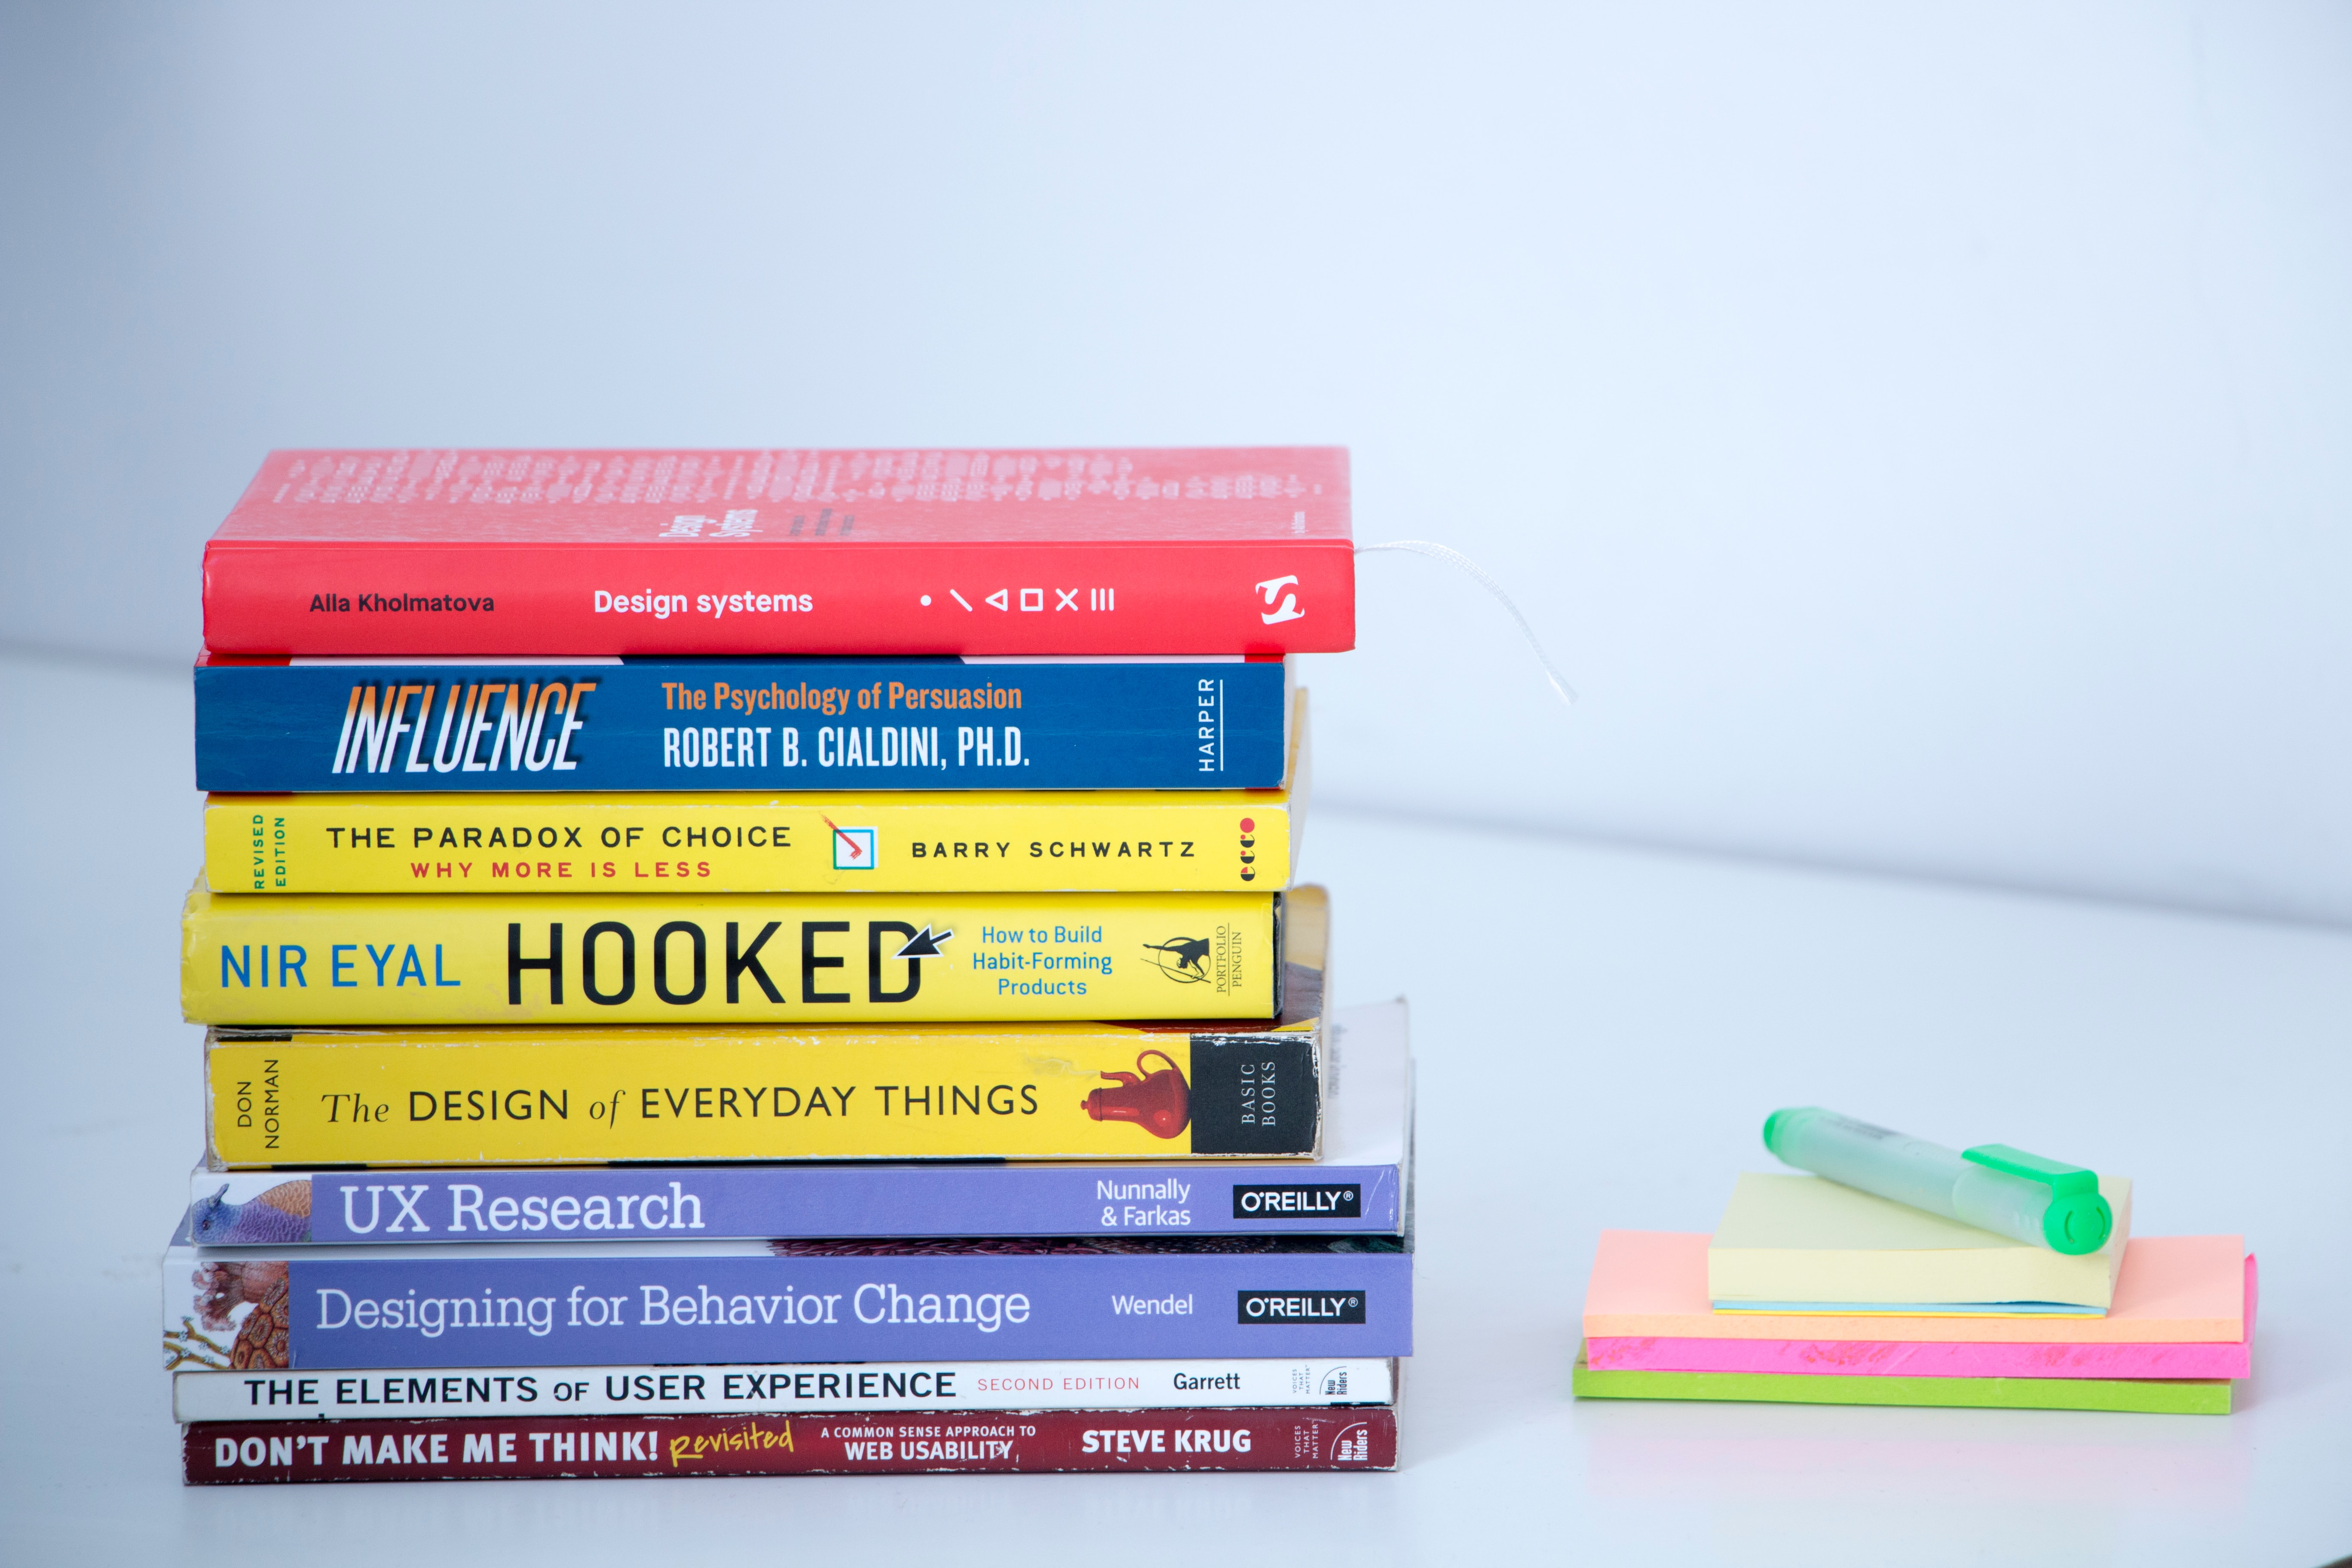 Hottest Reads from the DocuWare Team